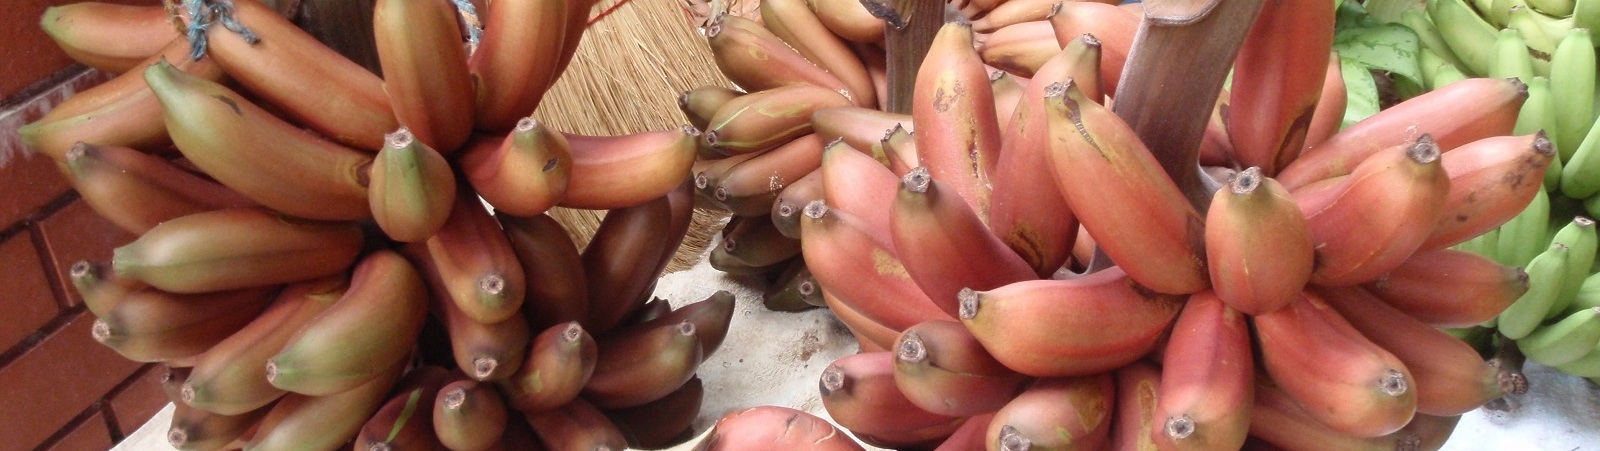 WHY IS BILL GATES BACKING GMO RED BANANA 'BIOPIRACY'?